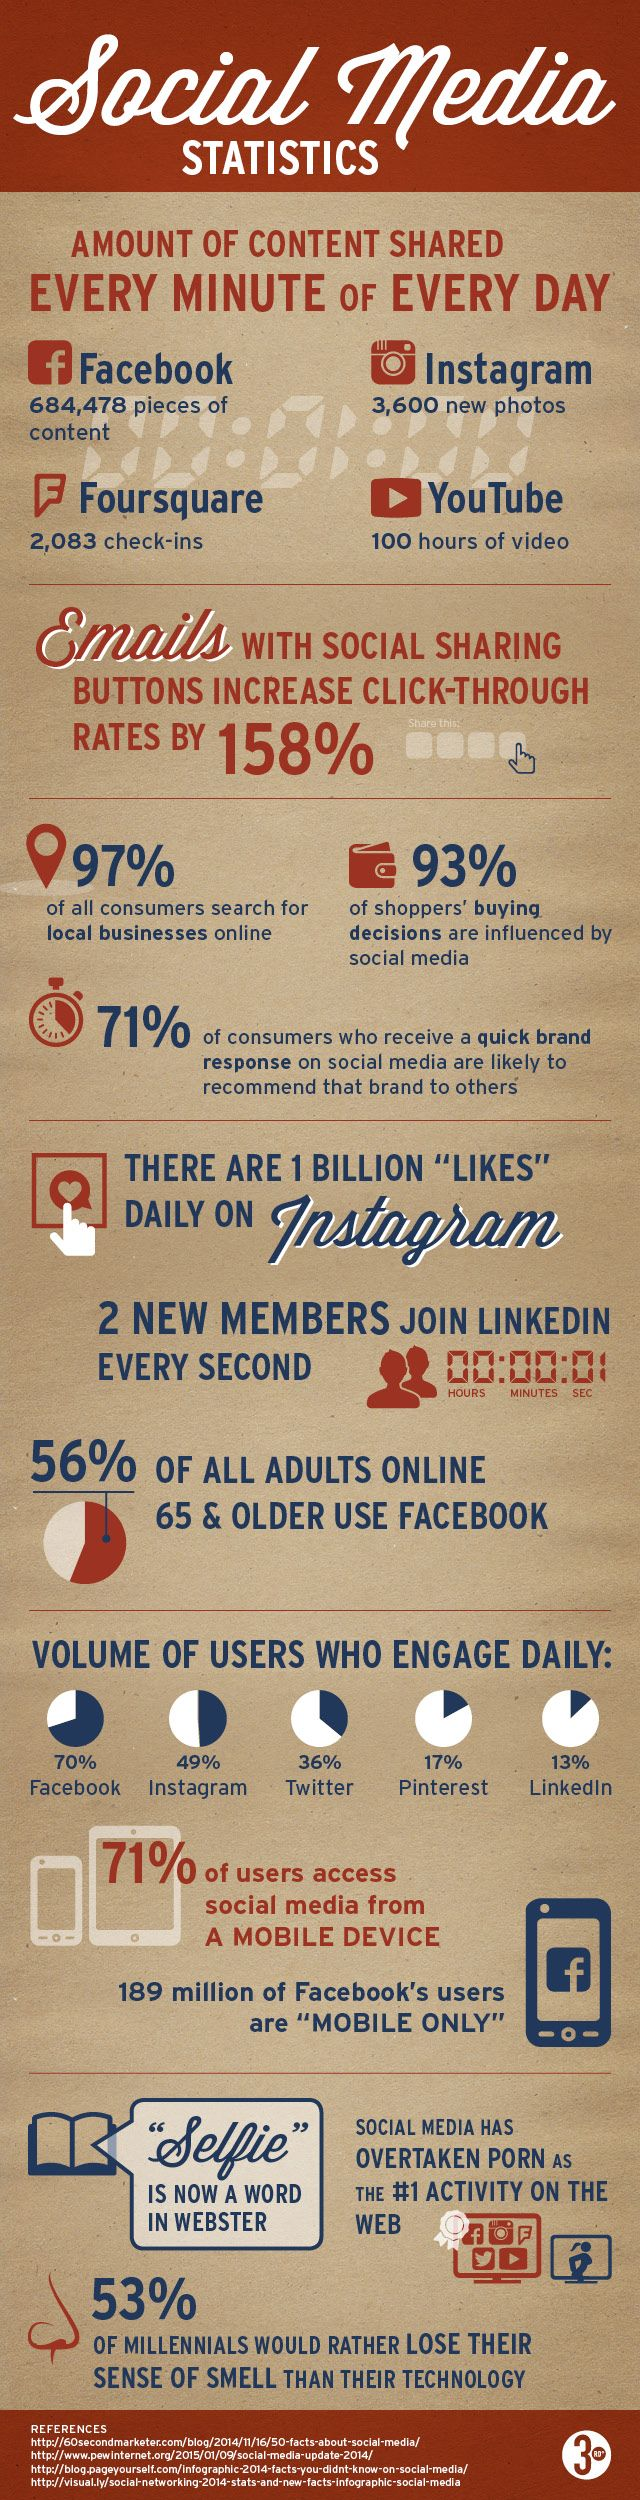 Check out these fun and useful facts about current social media consumption! #socialmedia #socialmeditips